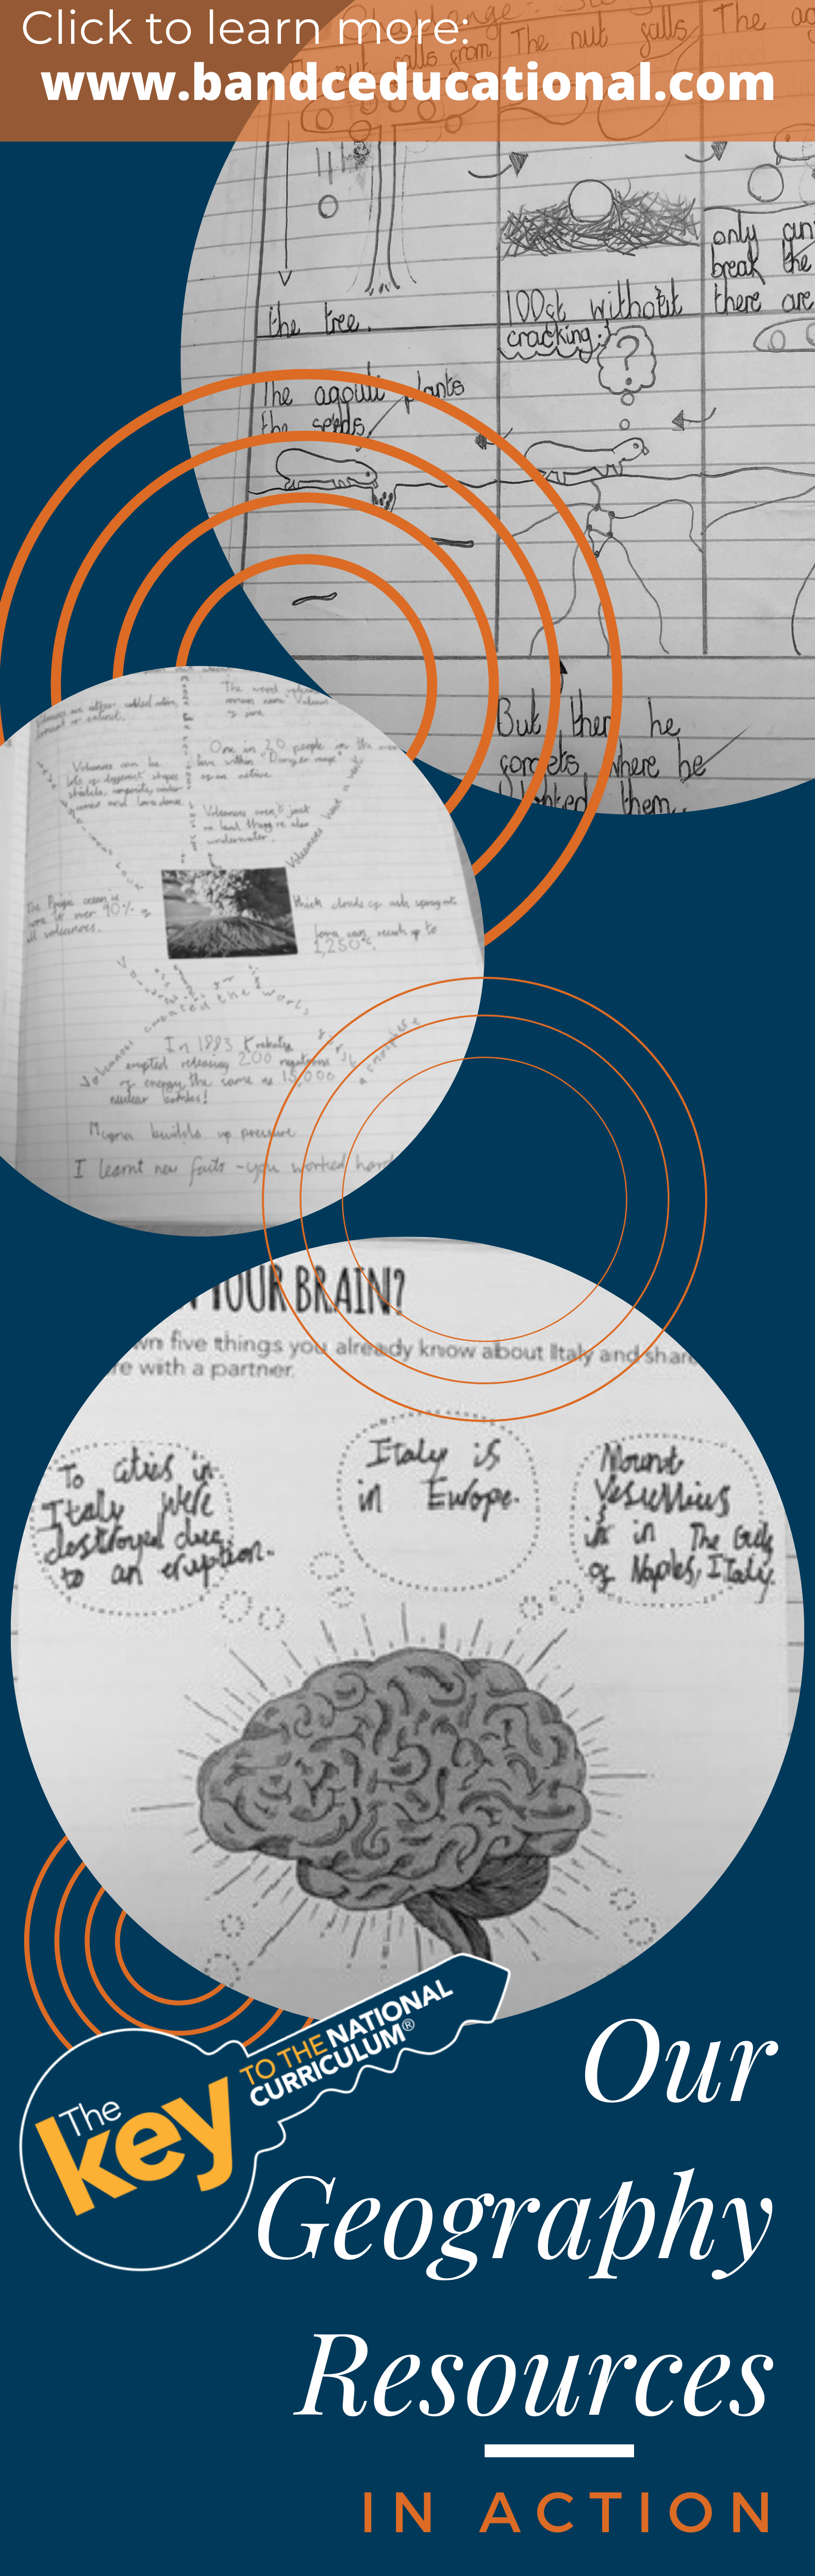 Example Classwork Showing Our Geography Resources In